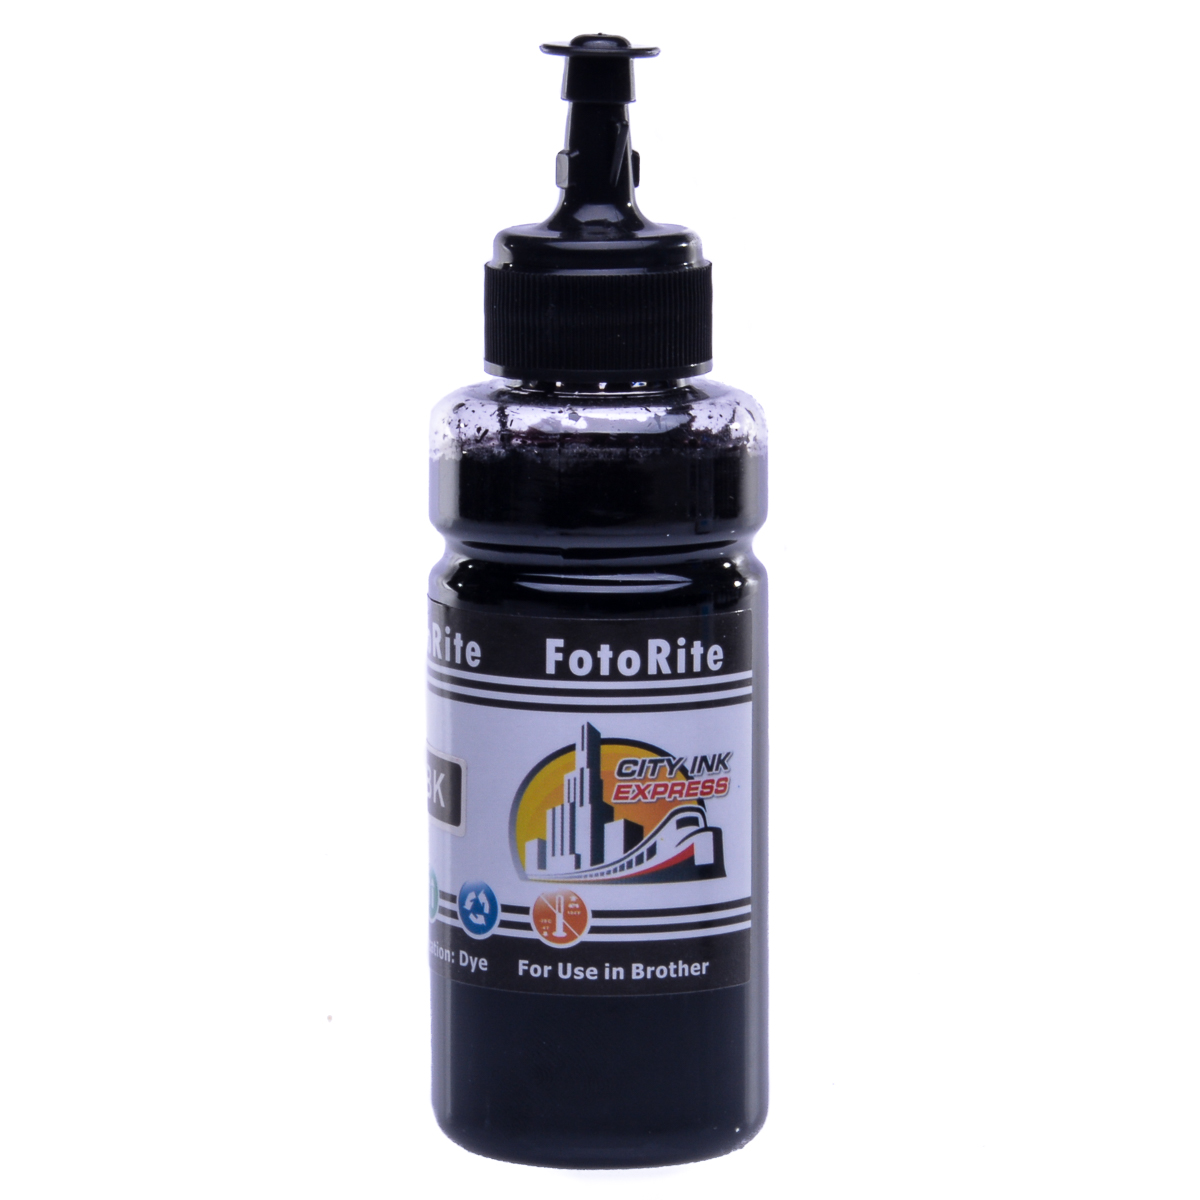 Cheap Black dye ink replaces Brother Fax 1560 - LC-1000BK